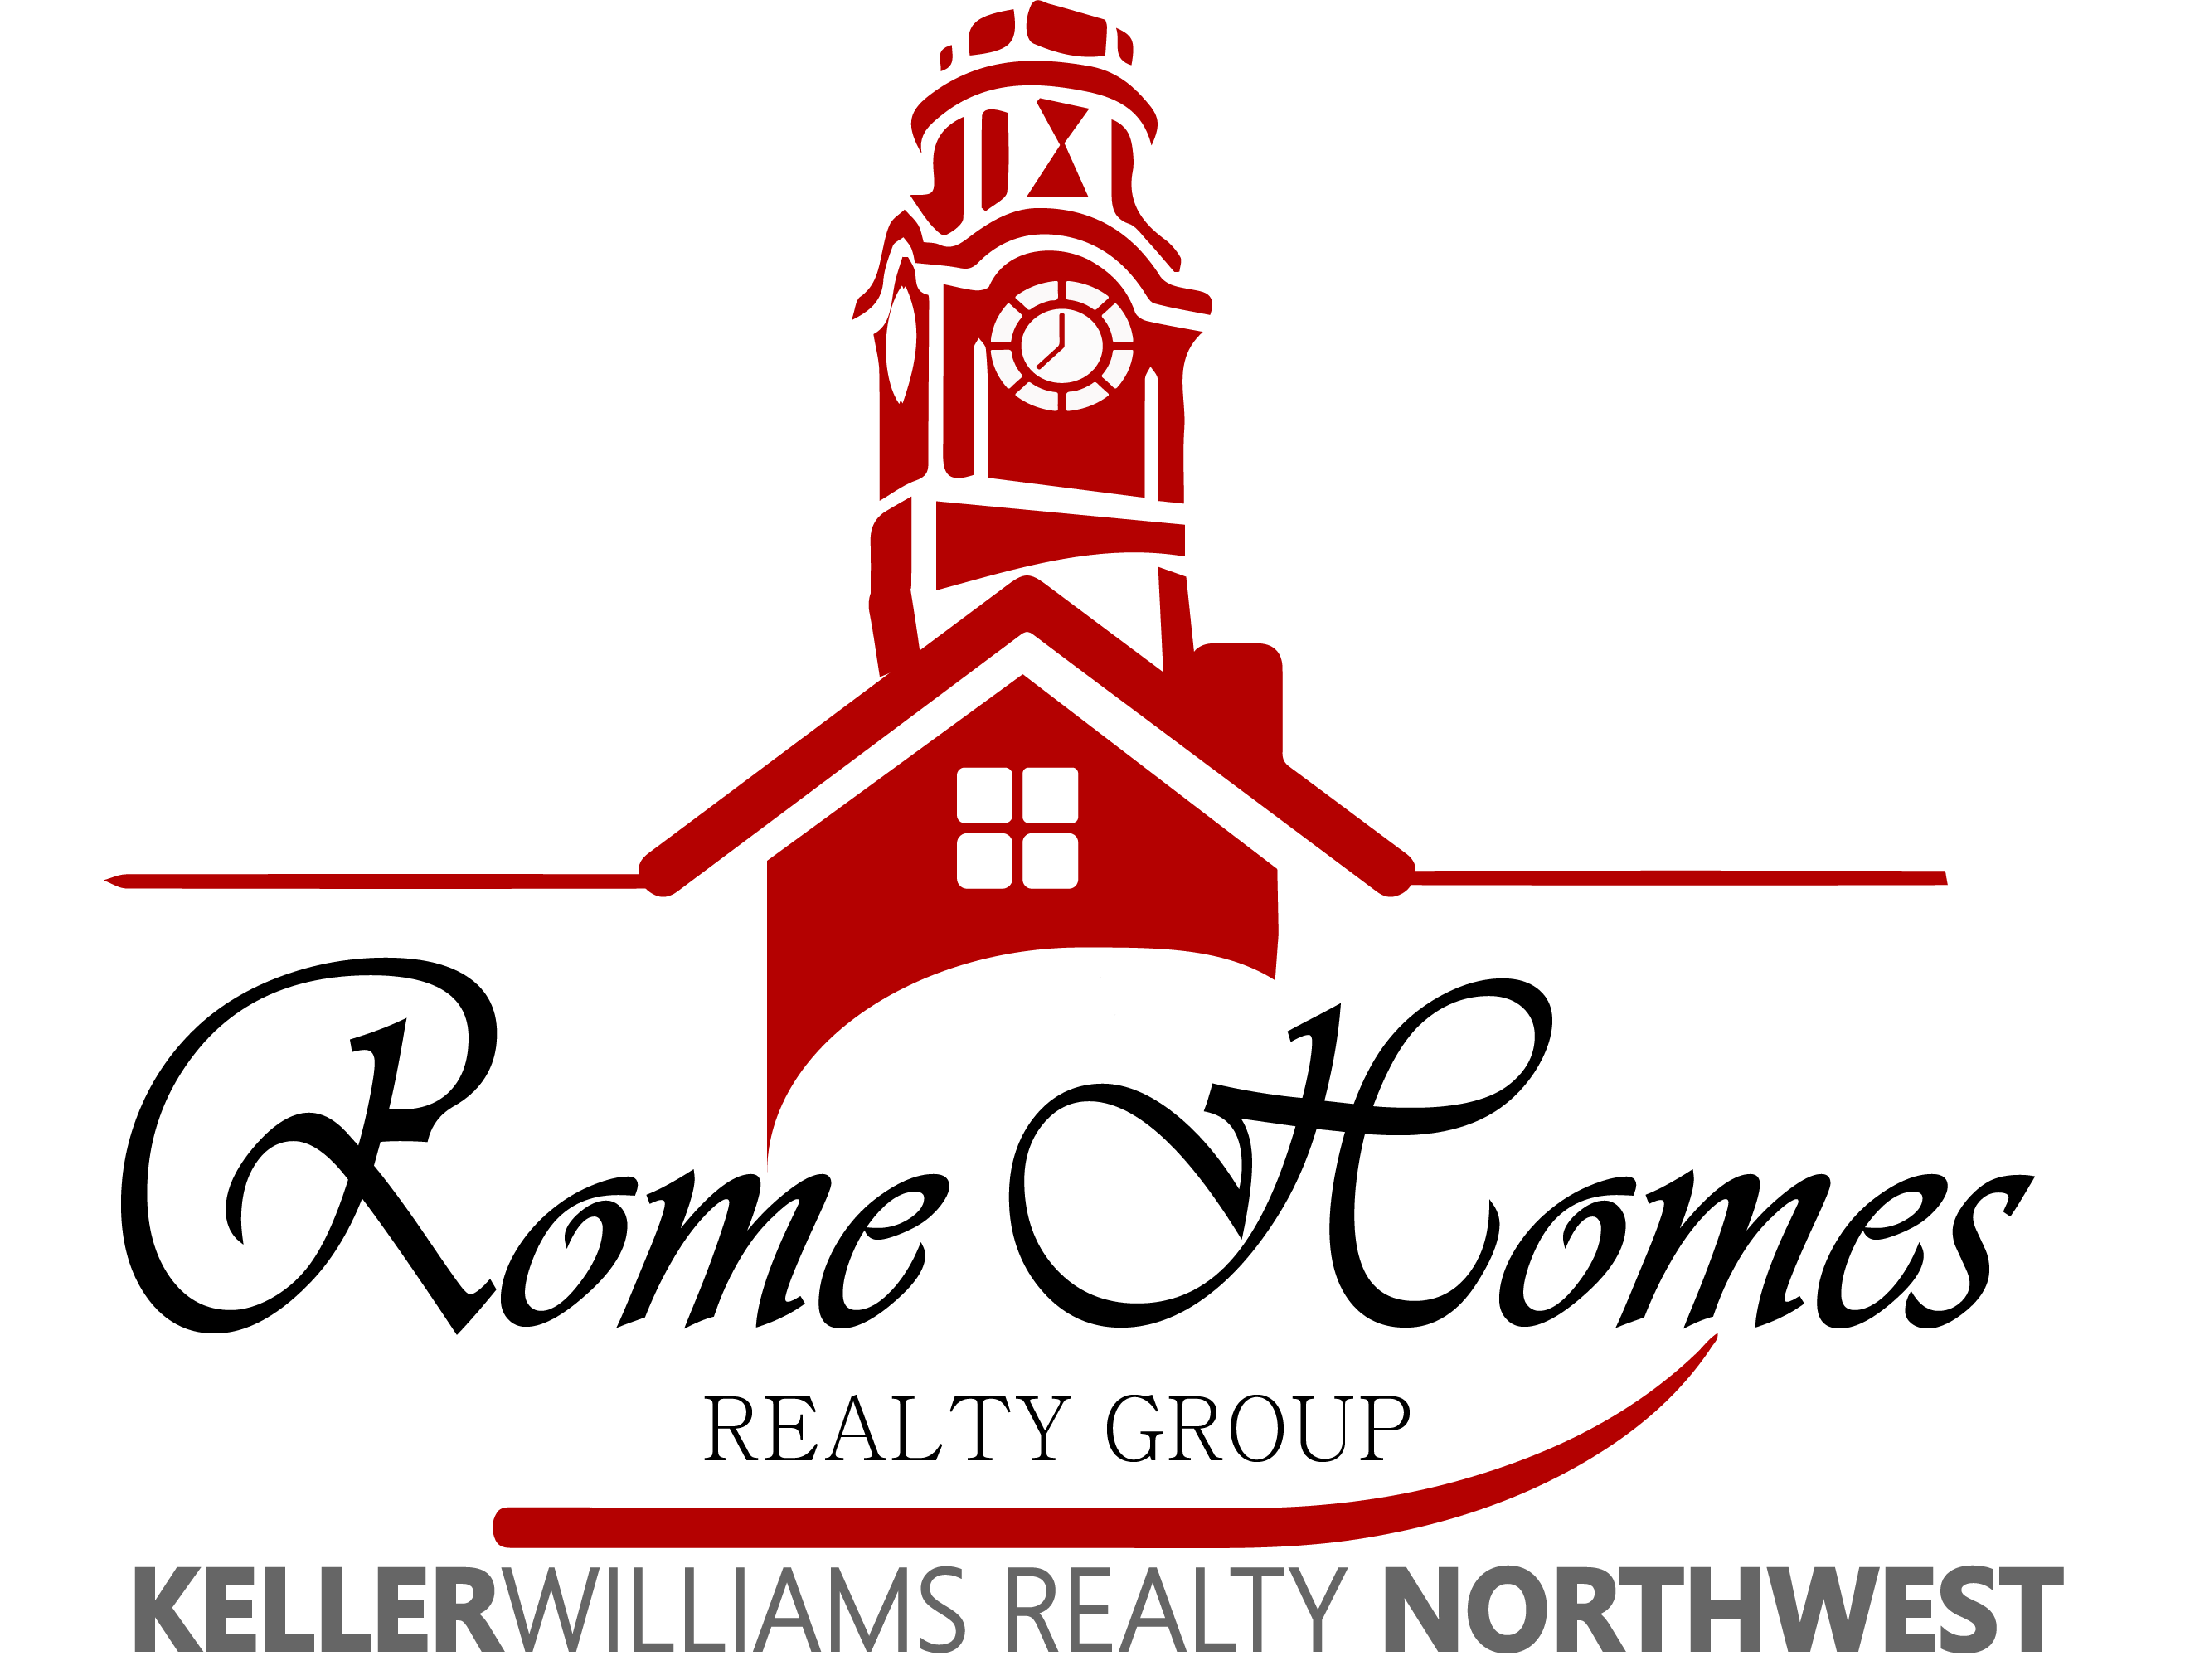 Rome Homes Realty Group Of Keller Williams Northwest Is A Formed To Specialize In Working With Almost Exclusively Georgia